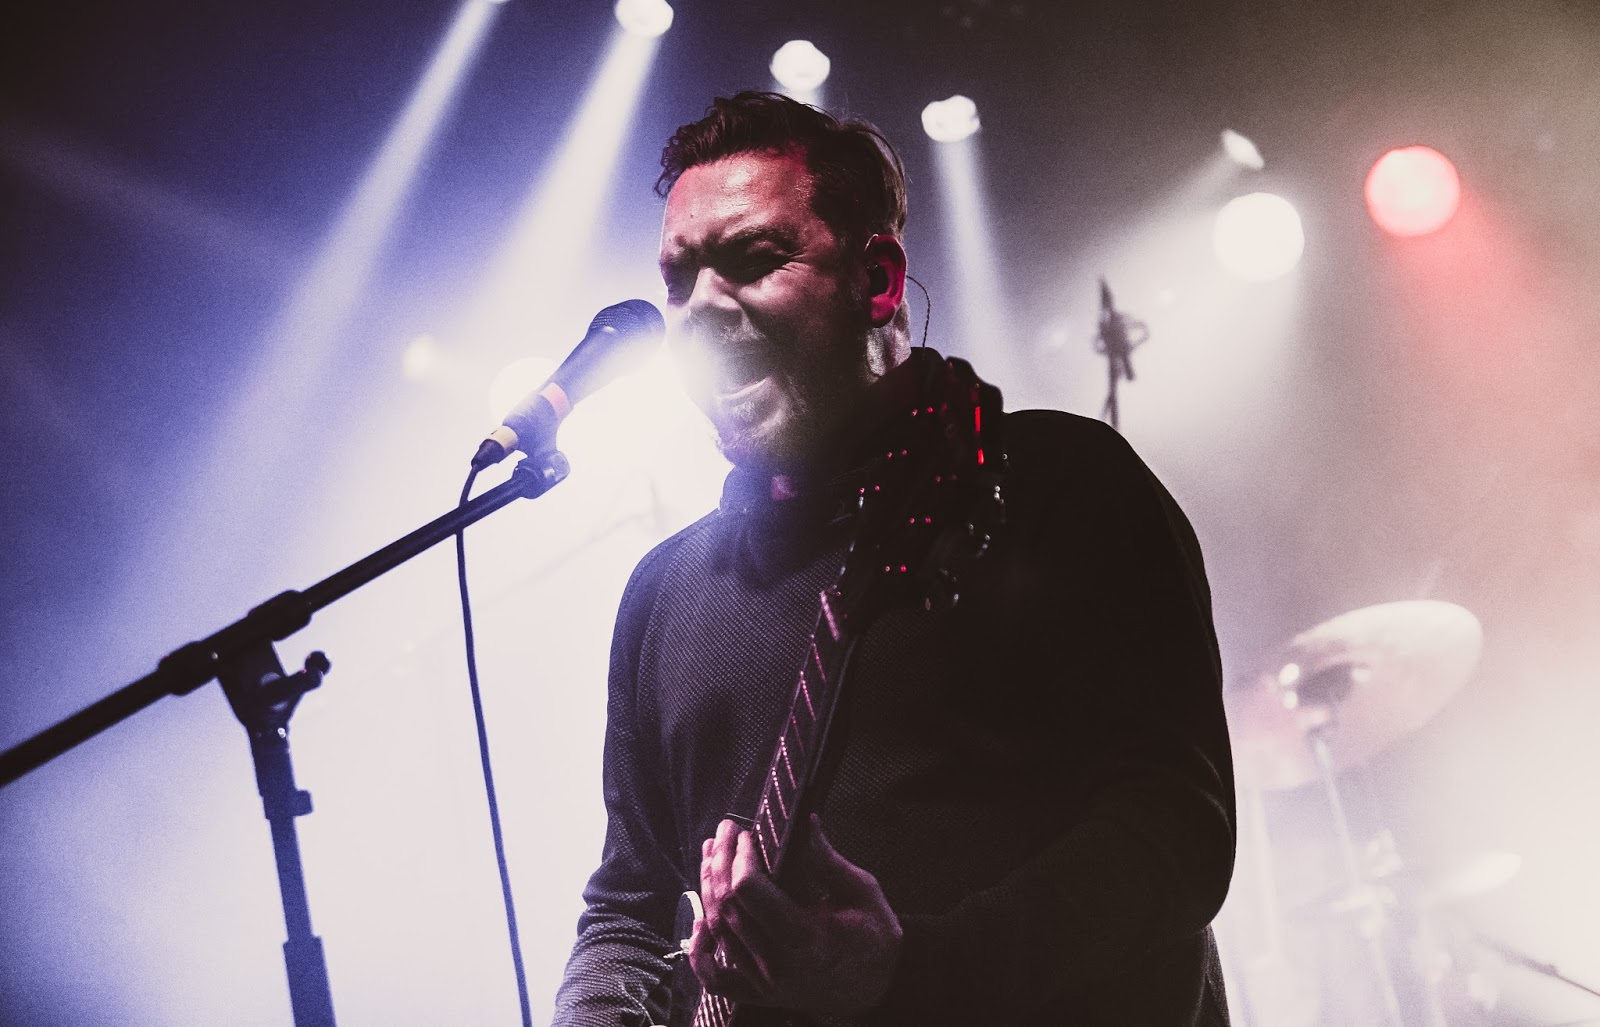 Meeting Prime Circle - Interview with Ross Learmonth